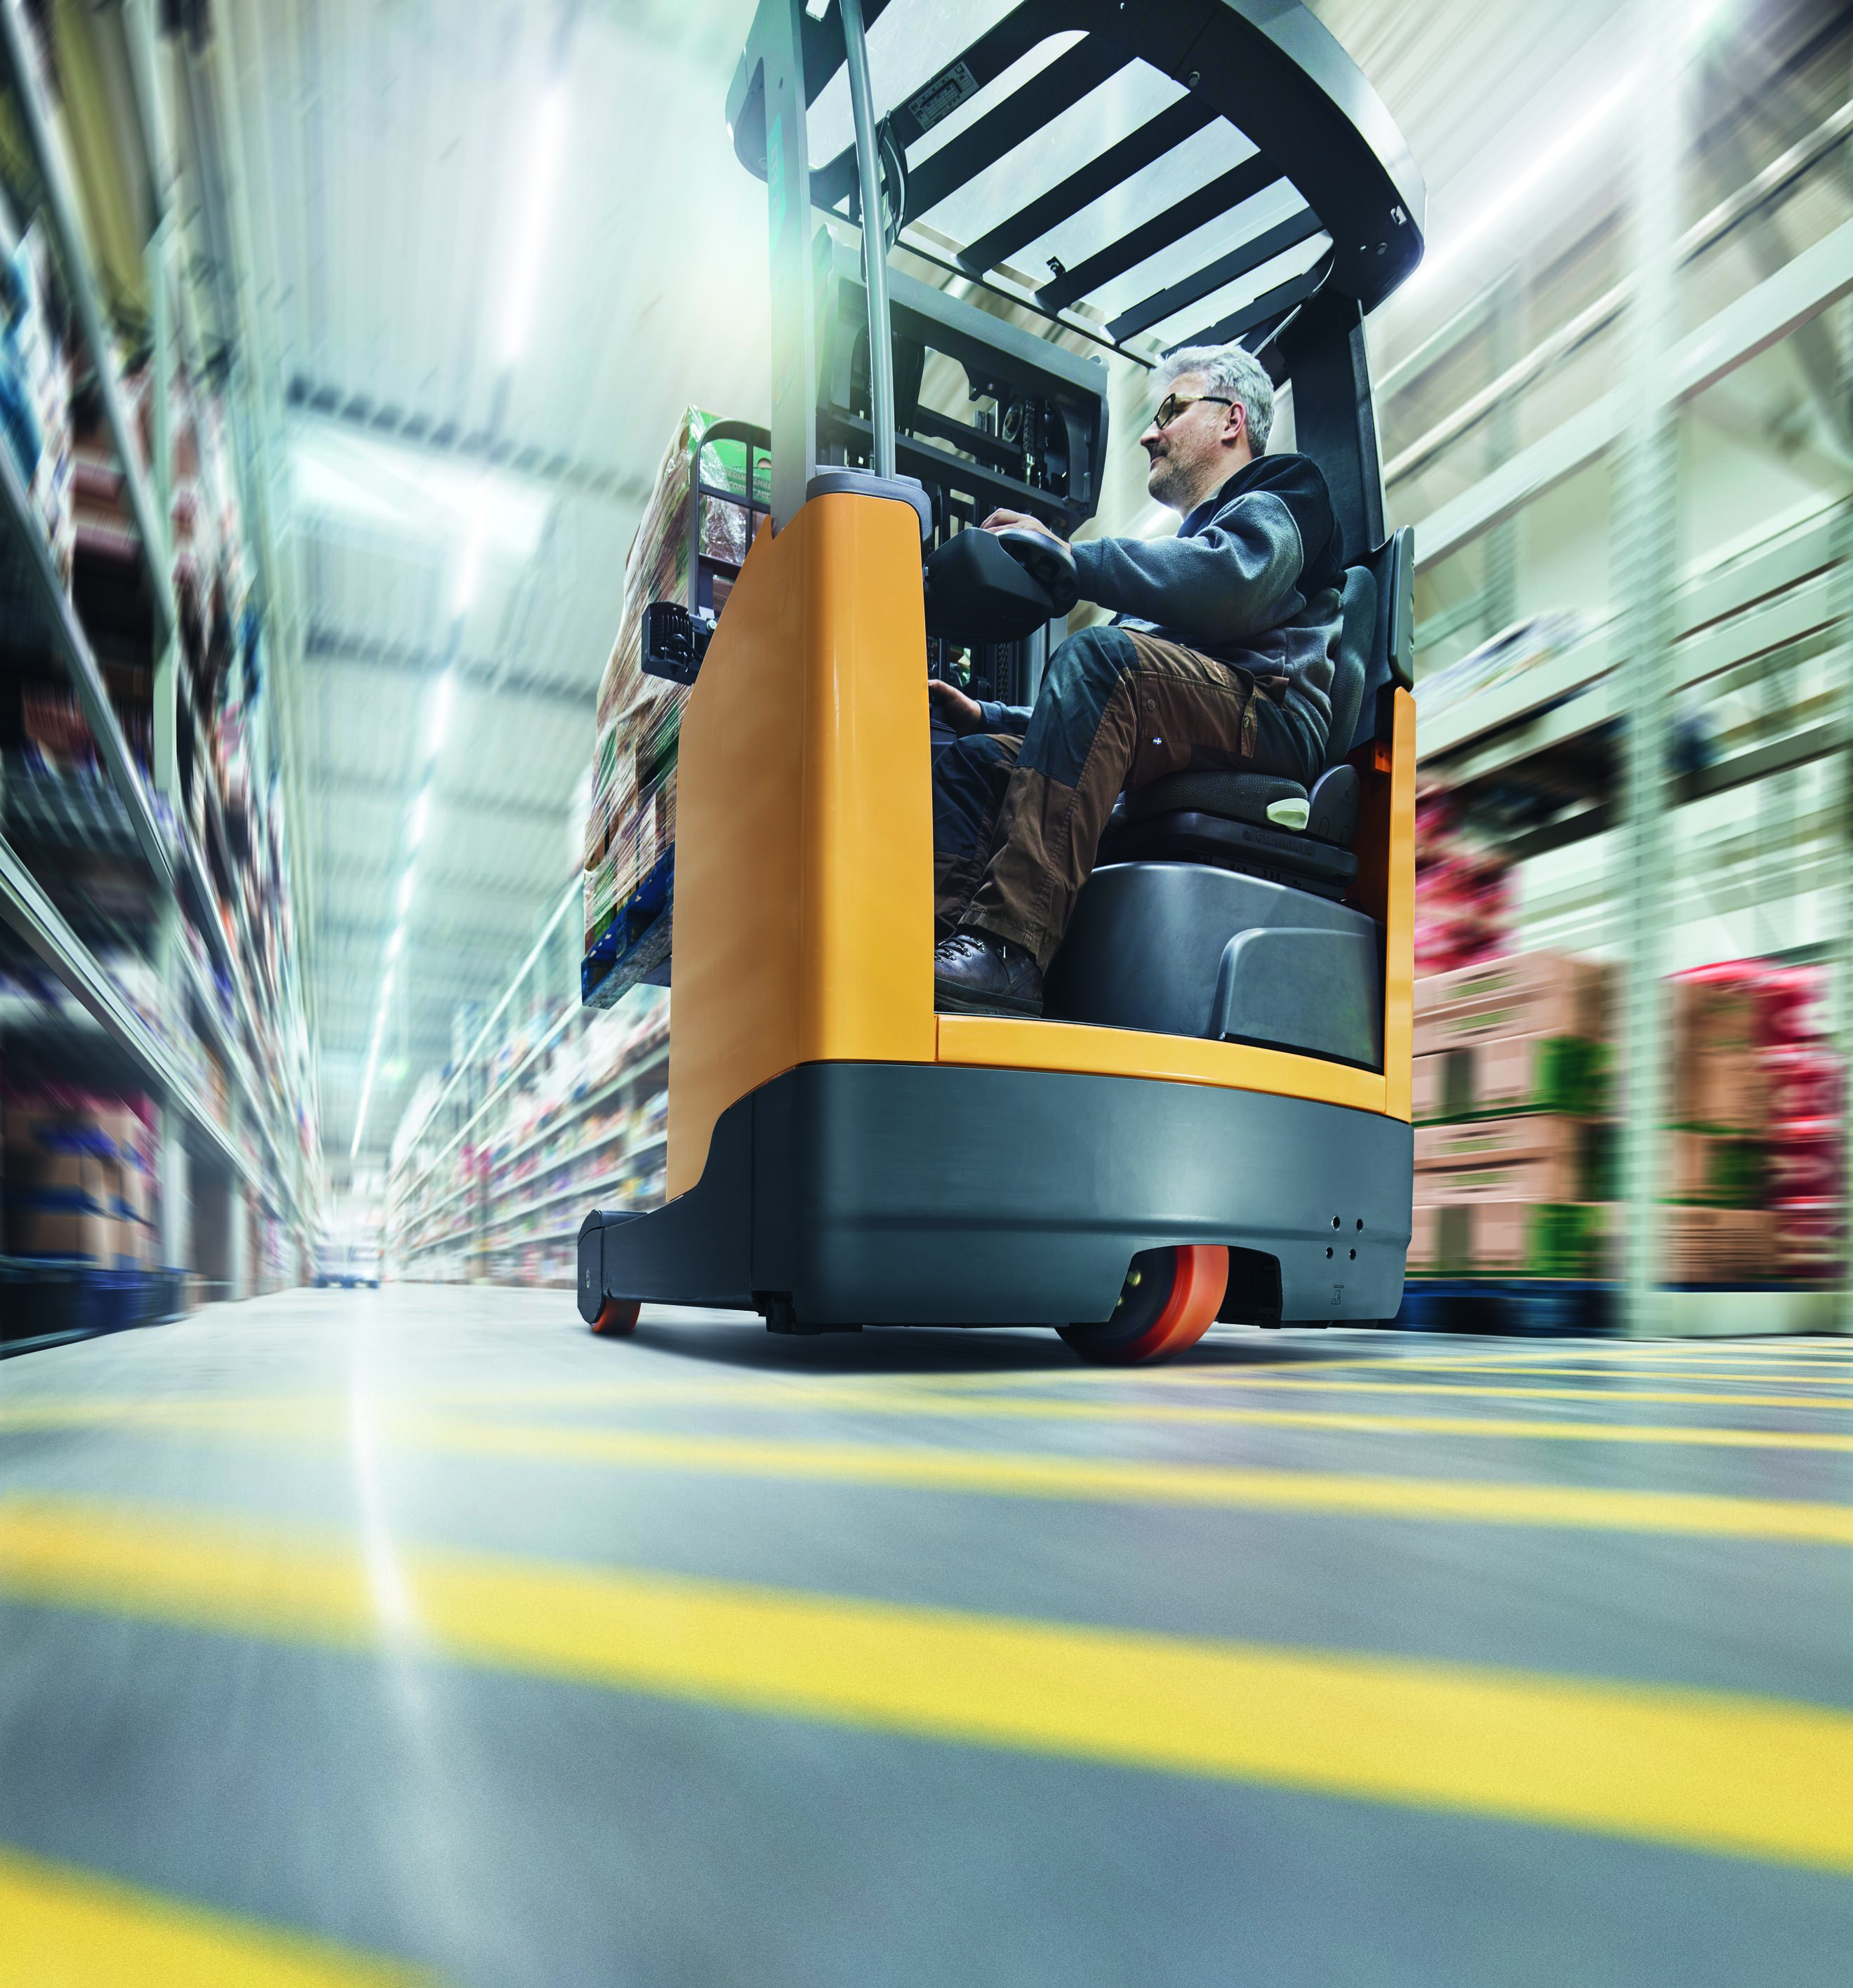 The wheels of forklift trucks are a typical application for the extremely robust polyurethane elastomer Vulkollan from Covestro. (Source: Covestro)